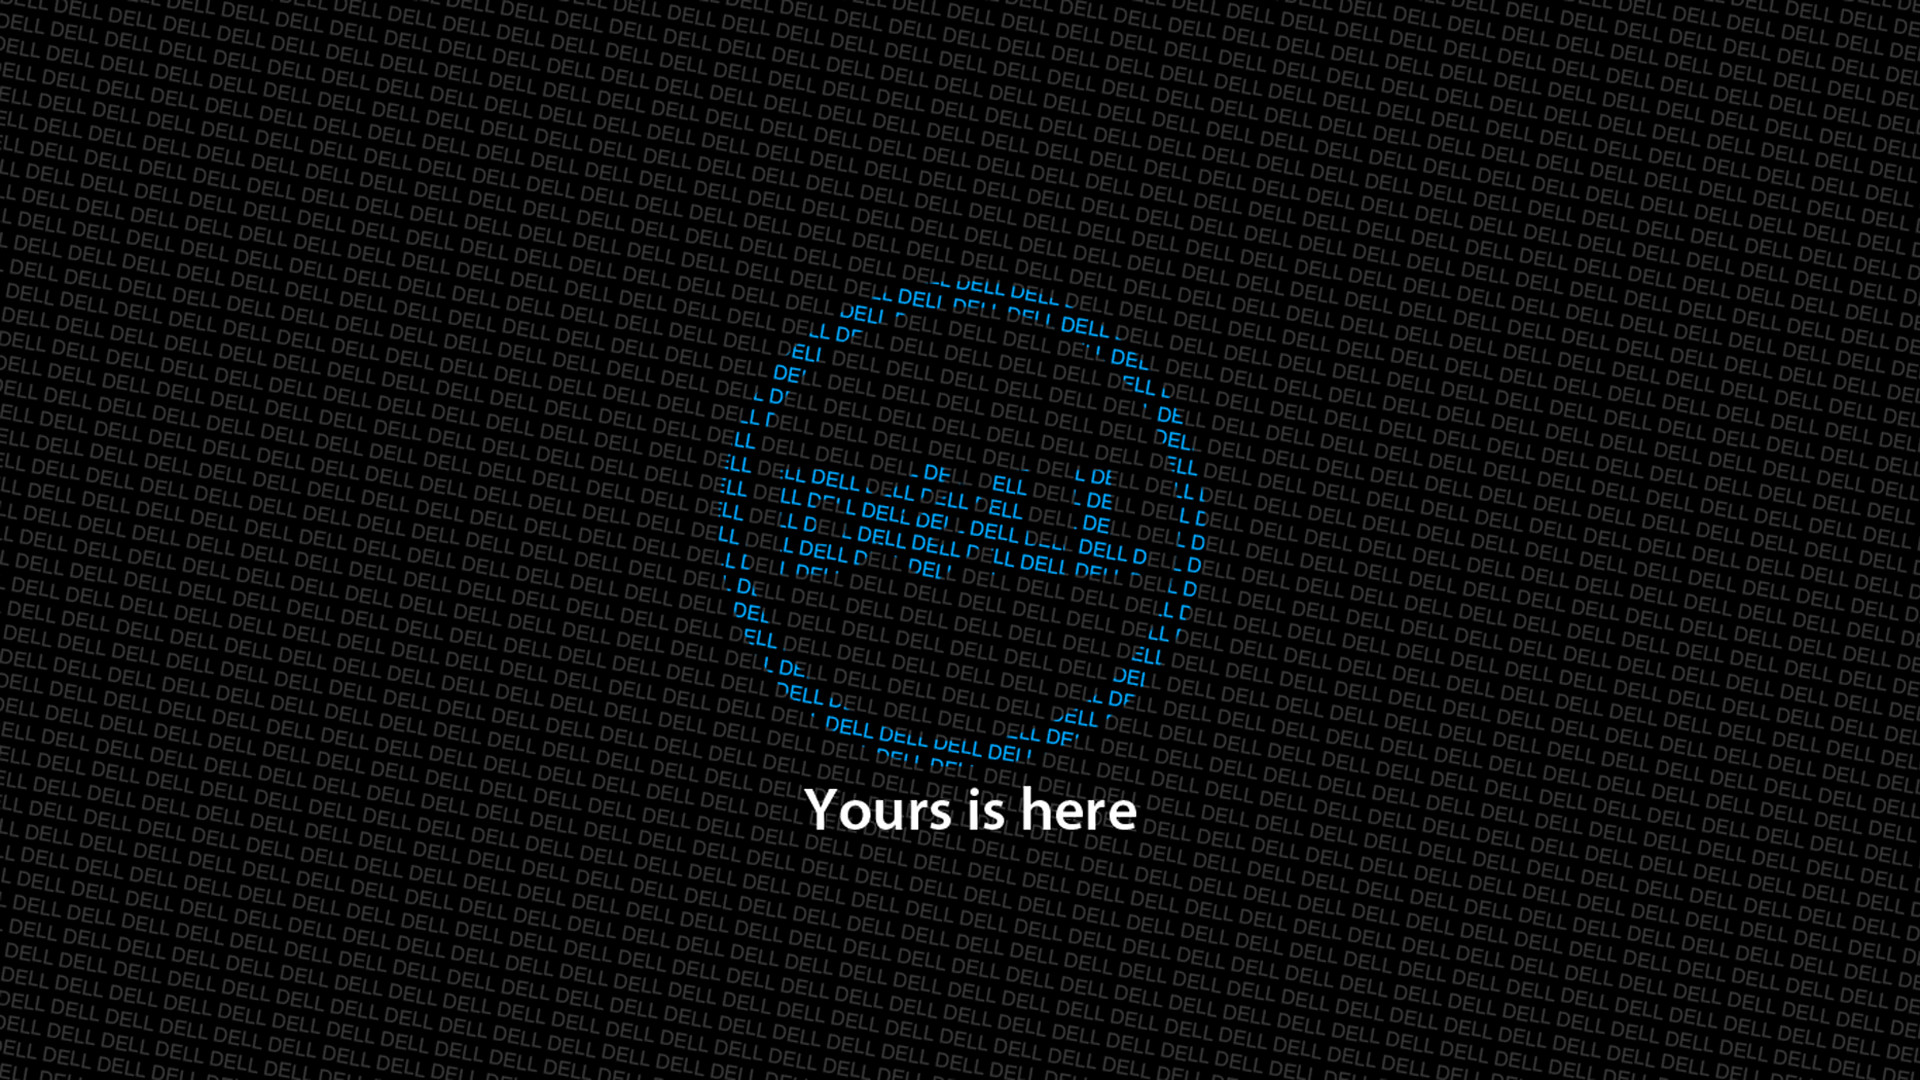 … dell wallpapers 1 …